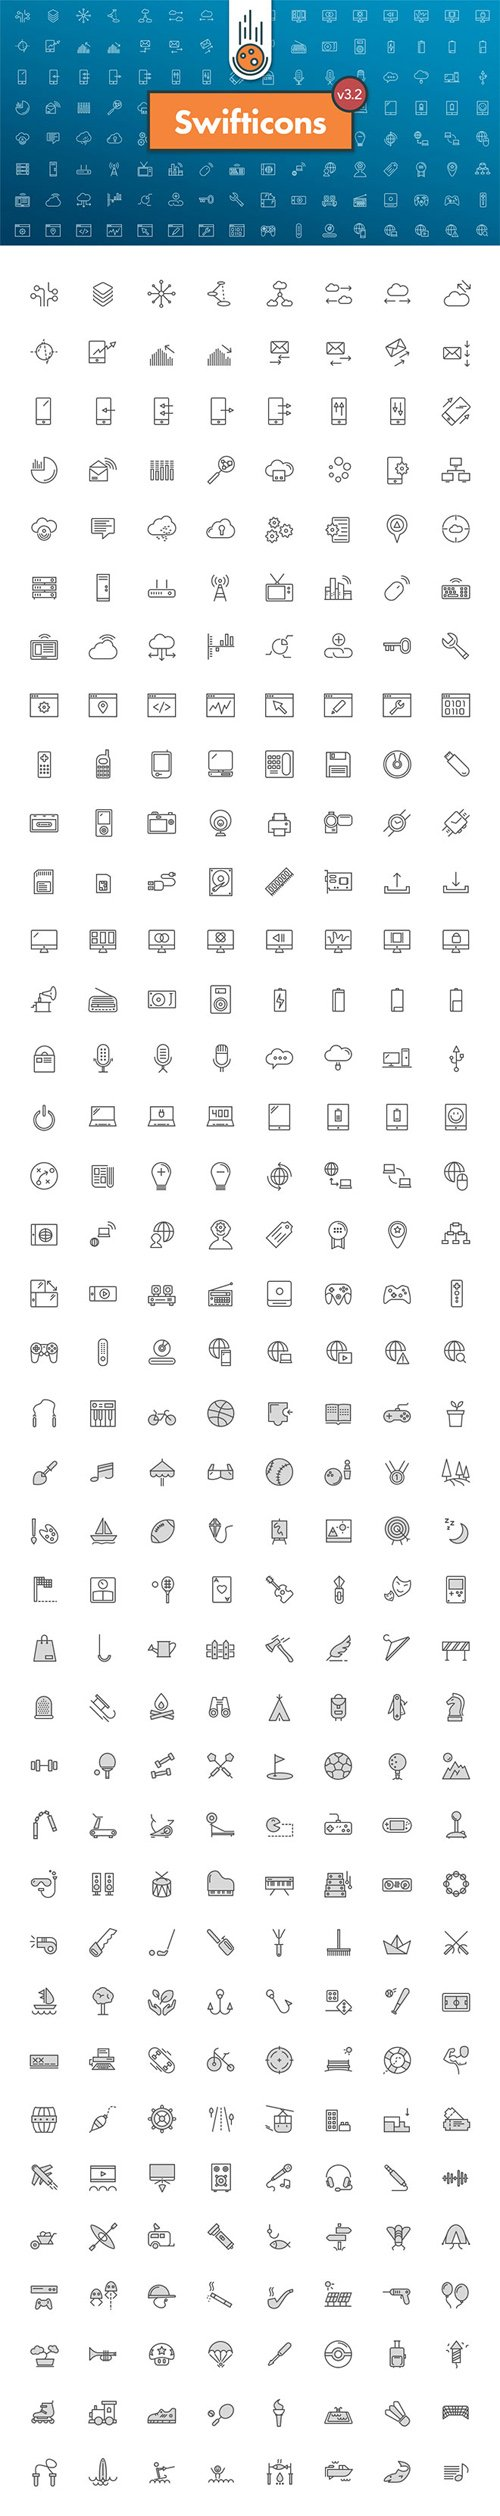 300+ Tech & Activities Icons in Vector [AI/EPS/SVG/PNG/SKETCH]